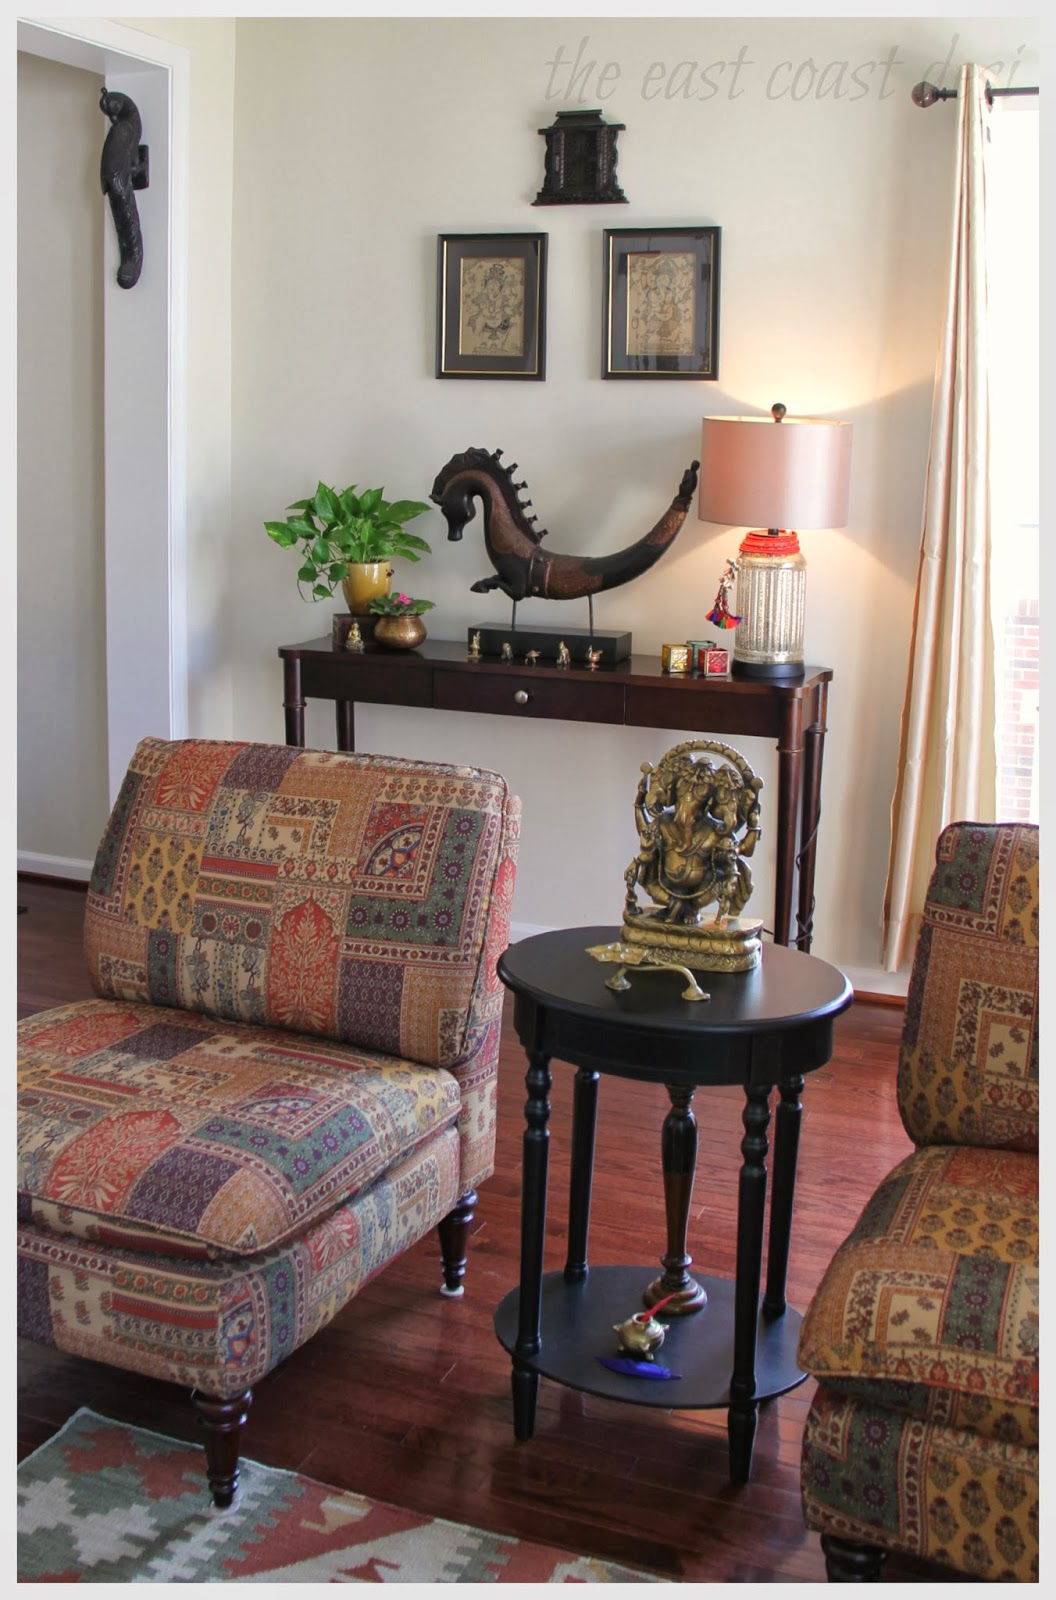 The east coast desi my living room a reflection of india for Simple living room designs in india